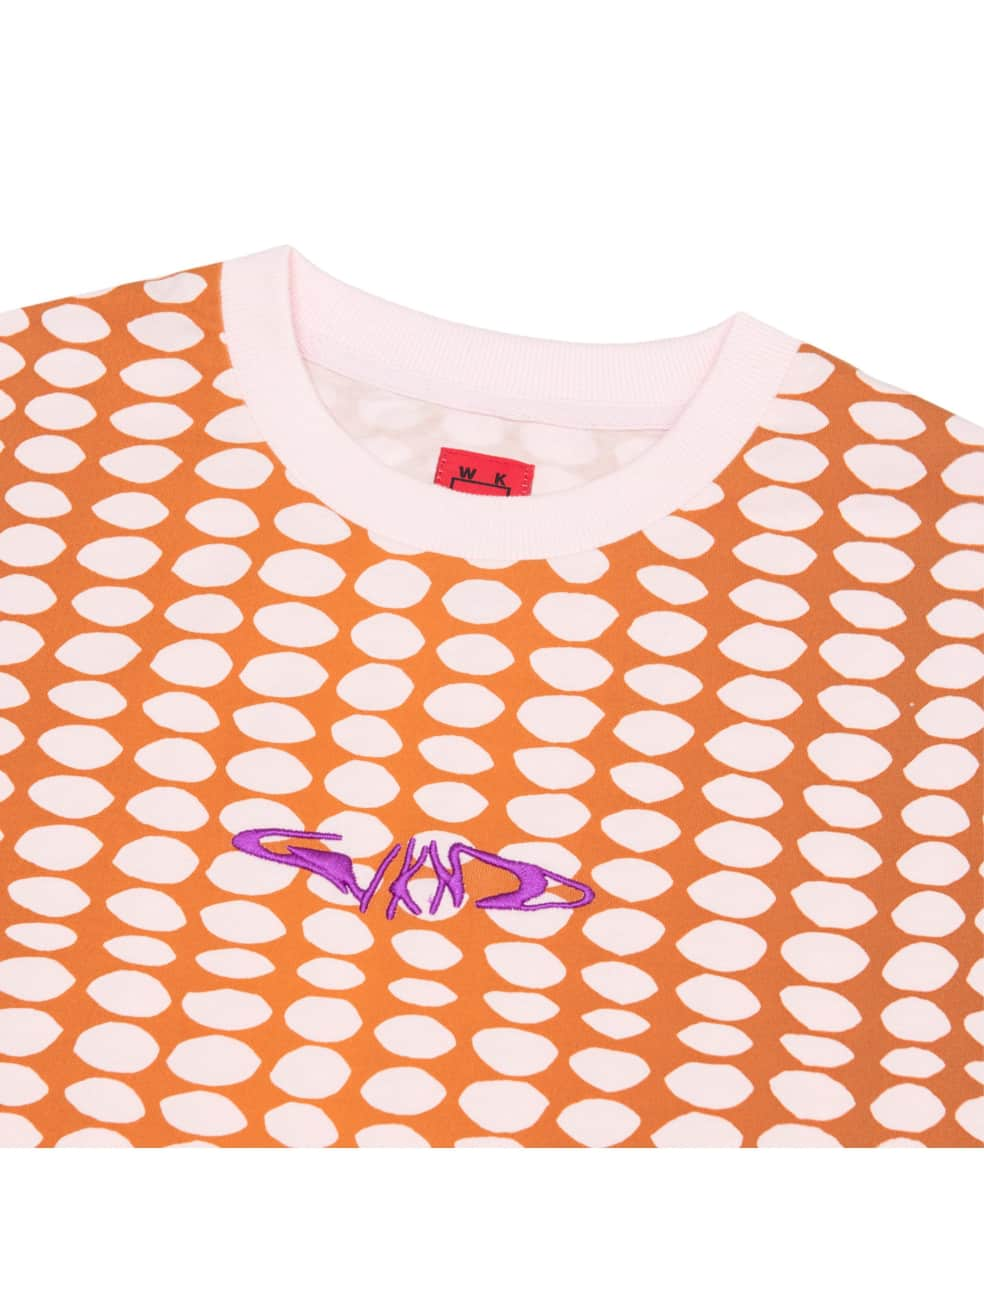 WKND Bubble T-Shirt - Pink / Brown | T-Shirt by WKND 2